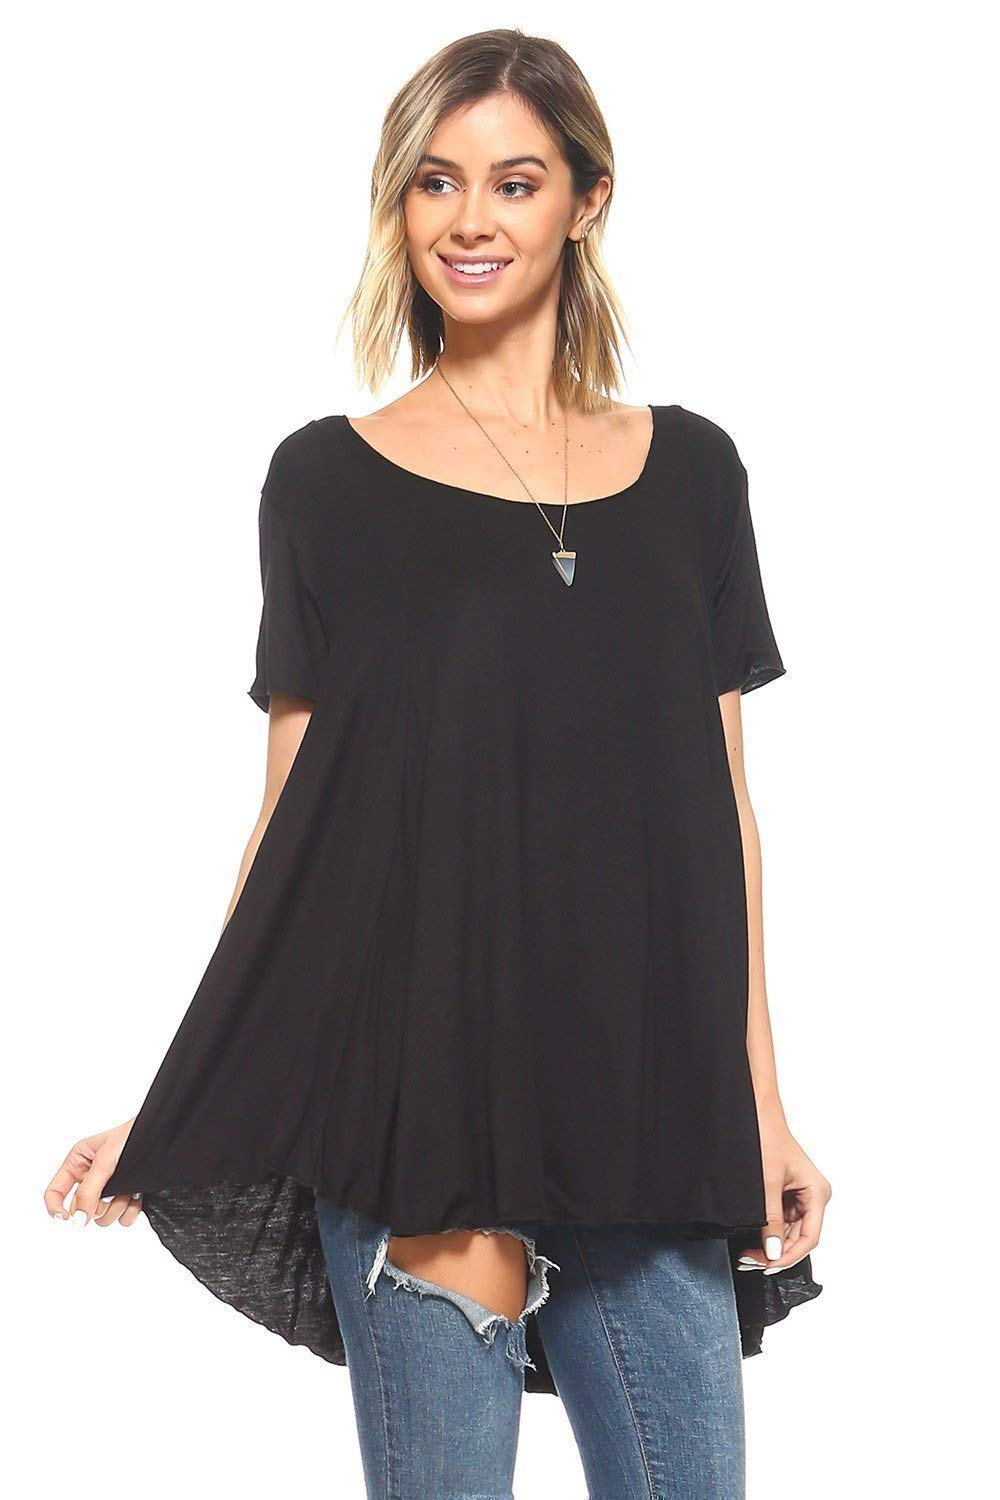 099b112b6898 Top6: Simplicitie Women's Short Sleeve Loose Fit Flare Flowy T Shirt Tunic  Top - Regular and Plus Size - Black - Made in USA